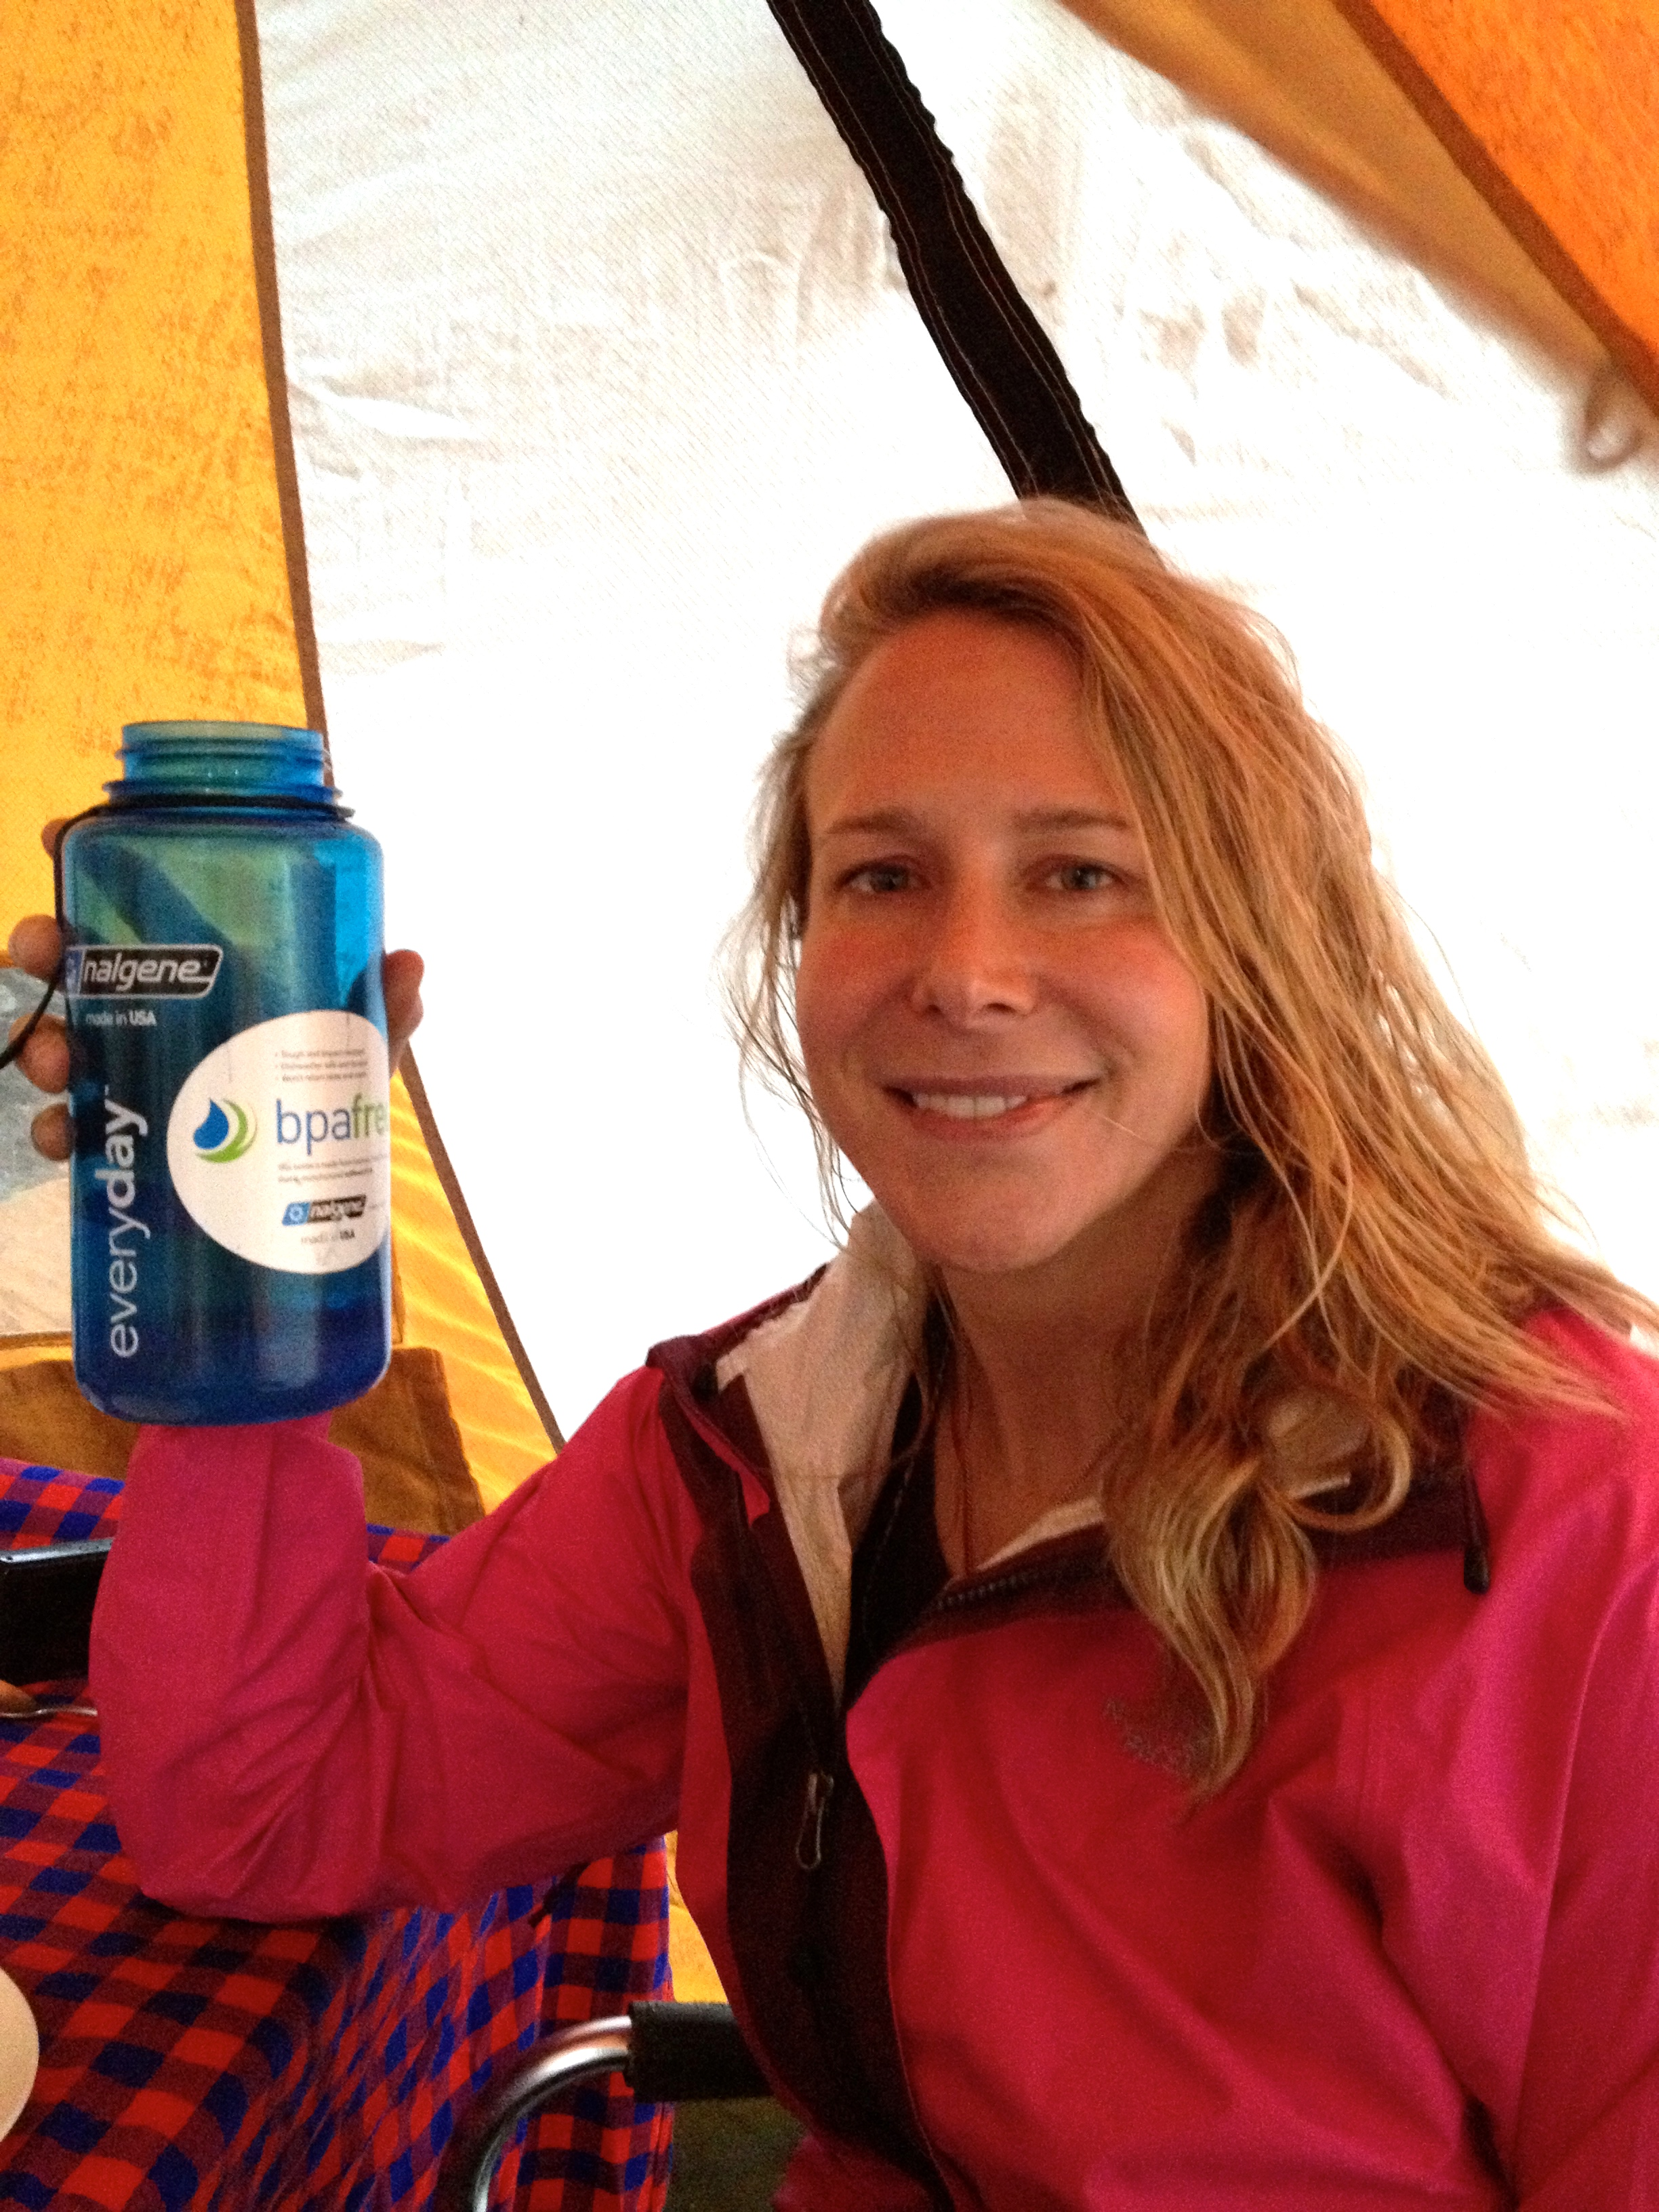 Vanessa holds a bottle at Mount Kilimanjaro - she is wearing a pink jacket, holding a blue bottle  - 8c0d2151 6e0c 4e11 b19a c72ef1628128 - 'I could never say no to space': British-American explorer aims for the stars